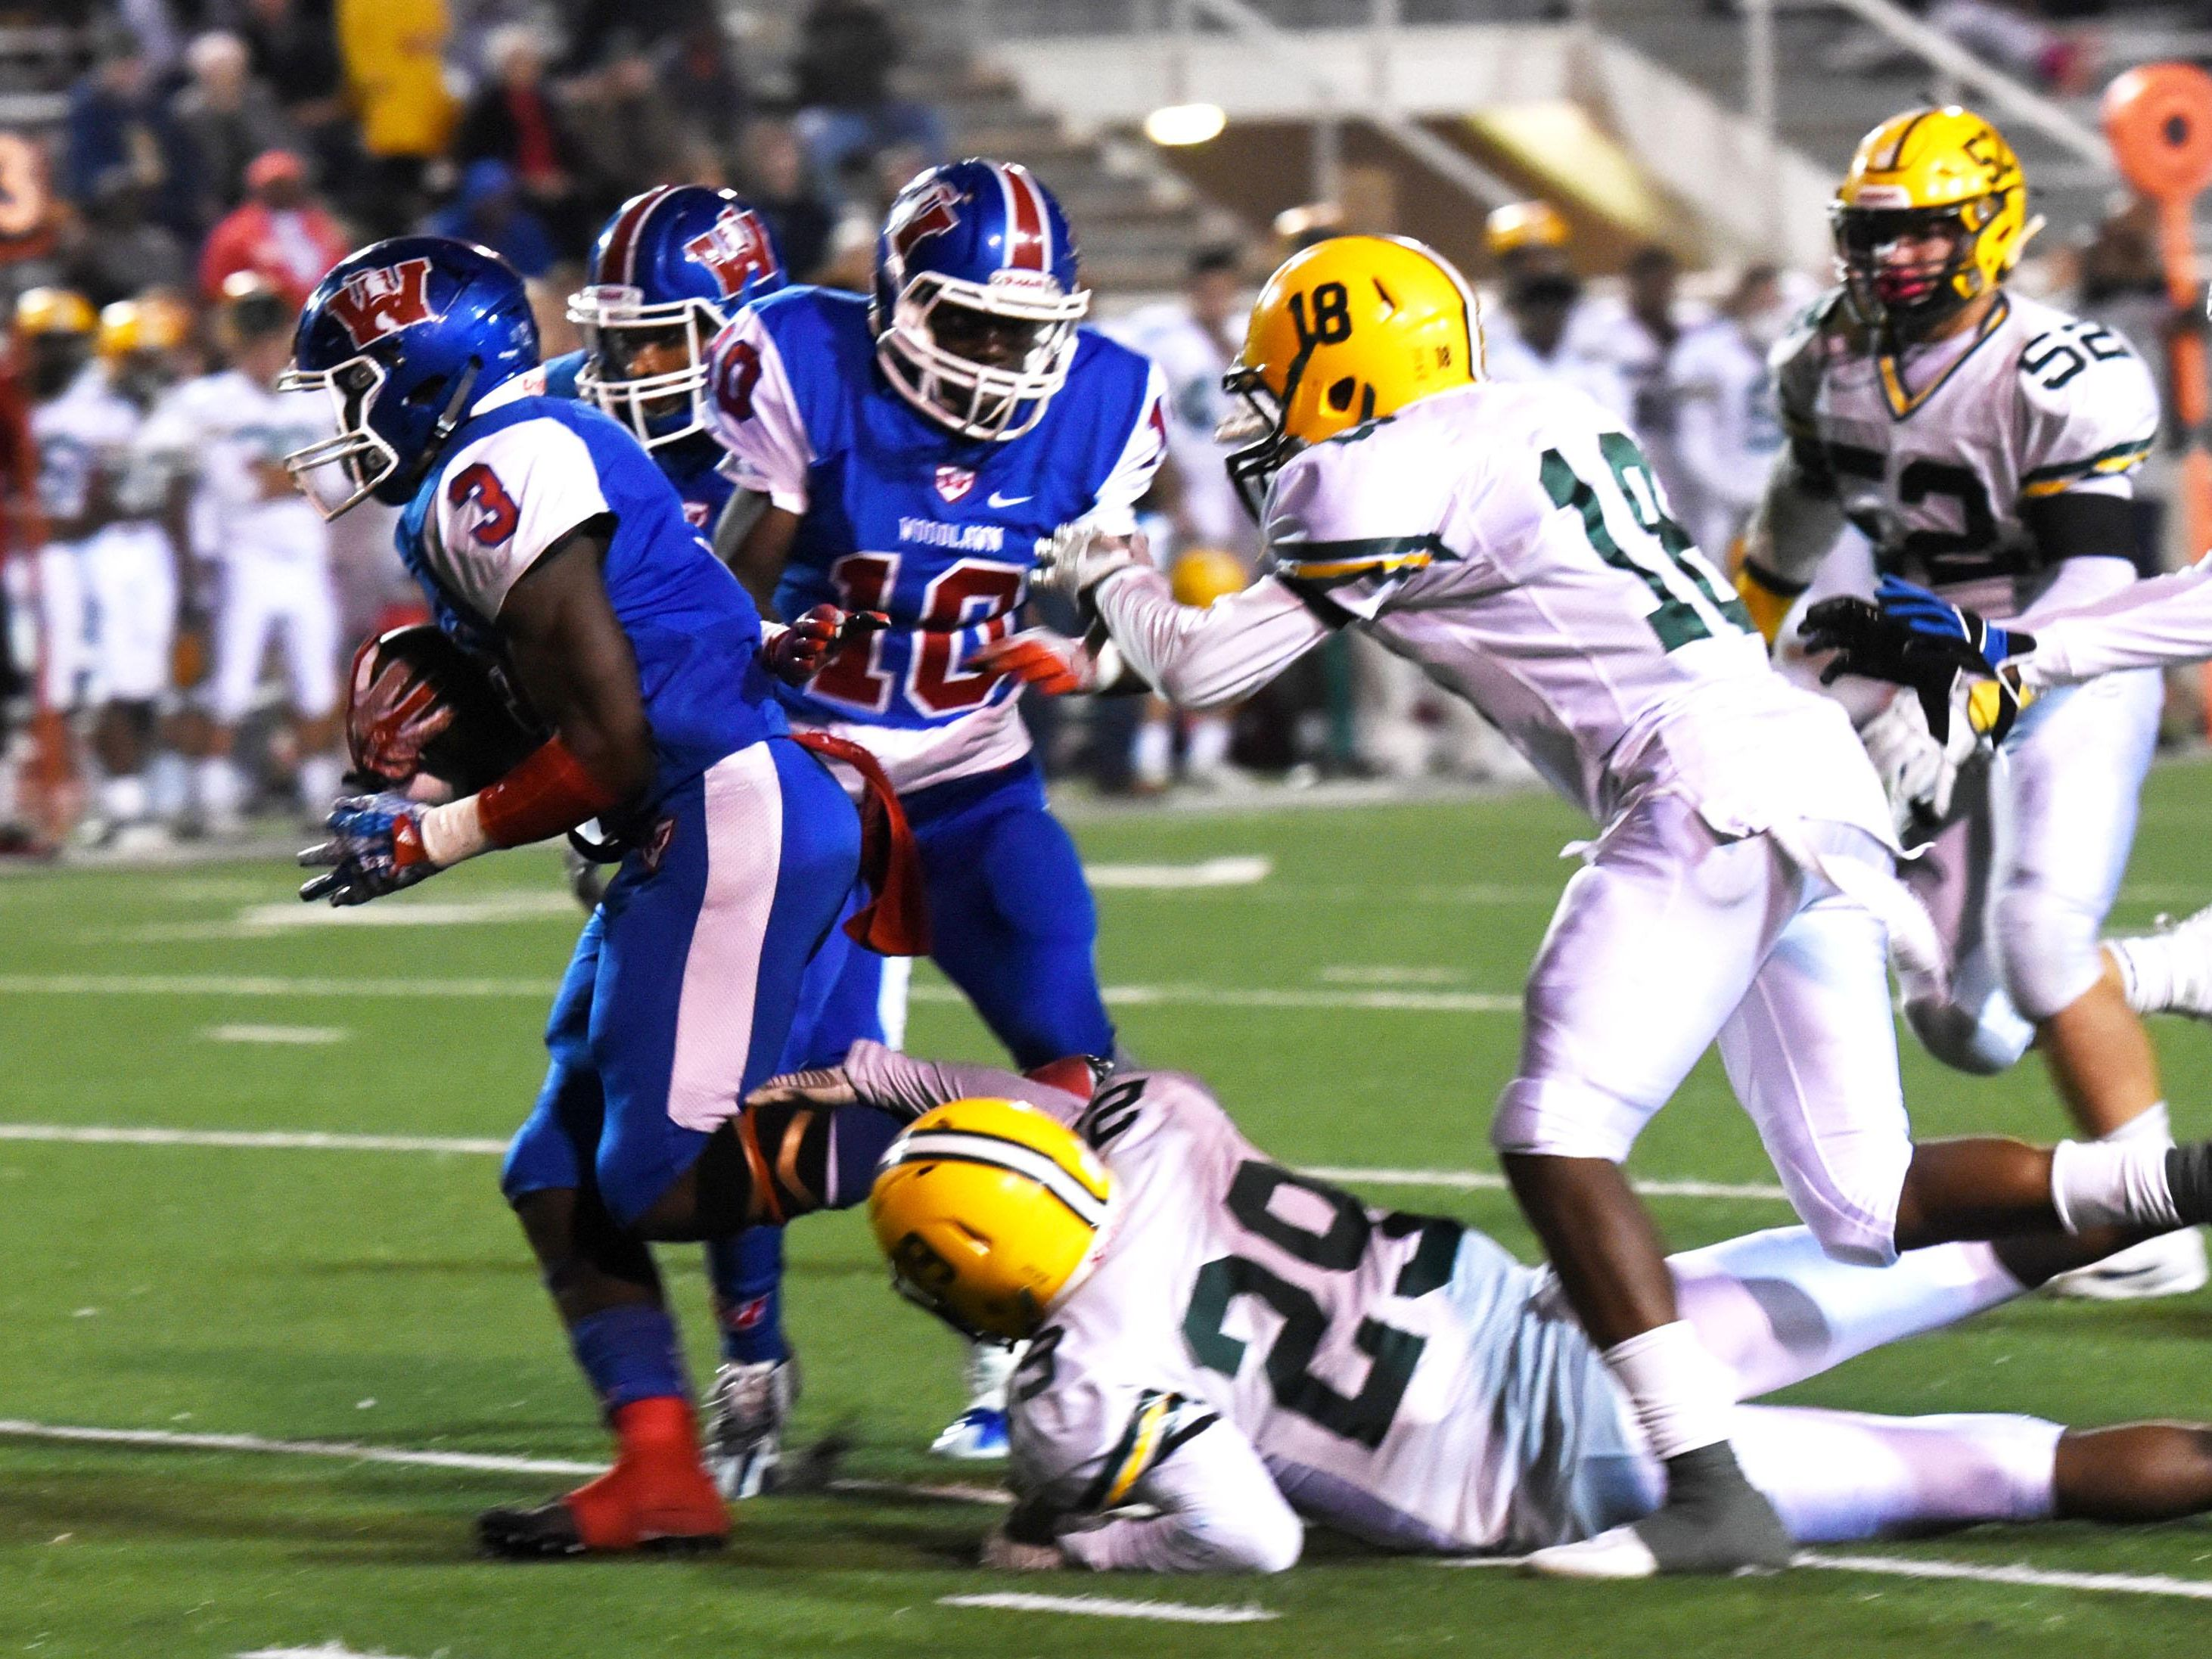 Woodlawn's Trivenskey Mosley tries to get past Cecilia's defense Friday evening at Lee Hedges Stadium.